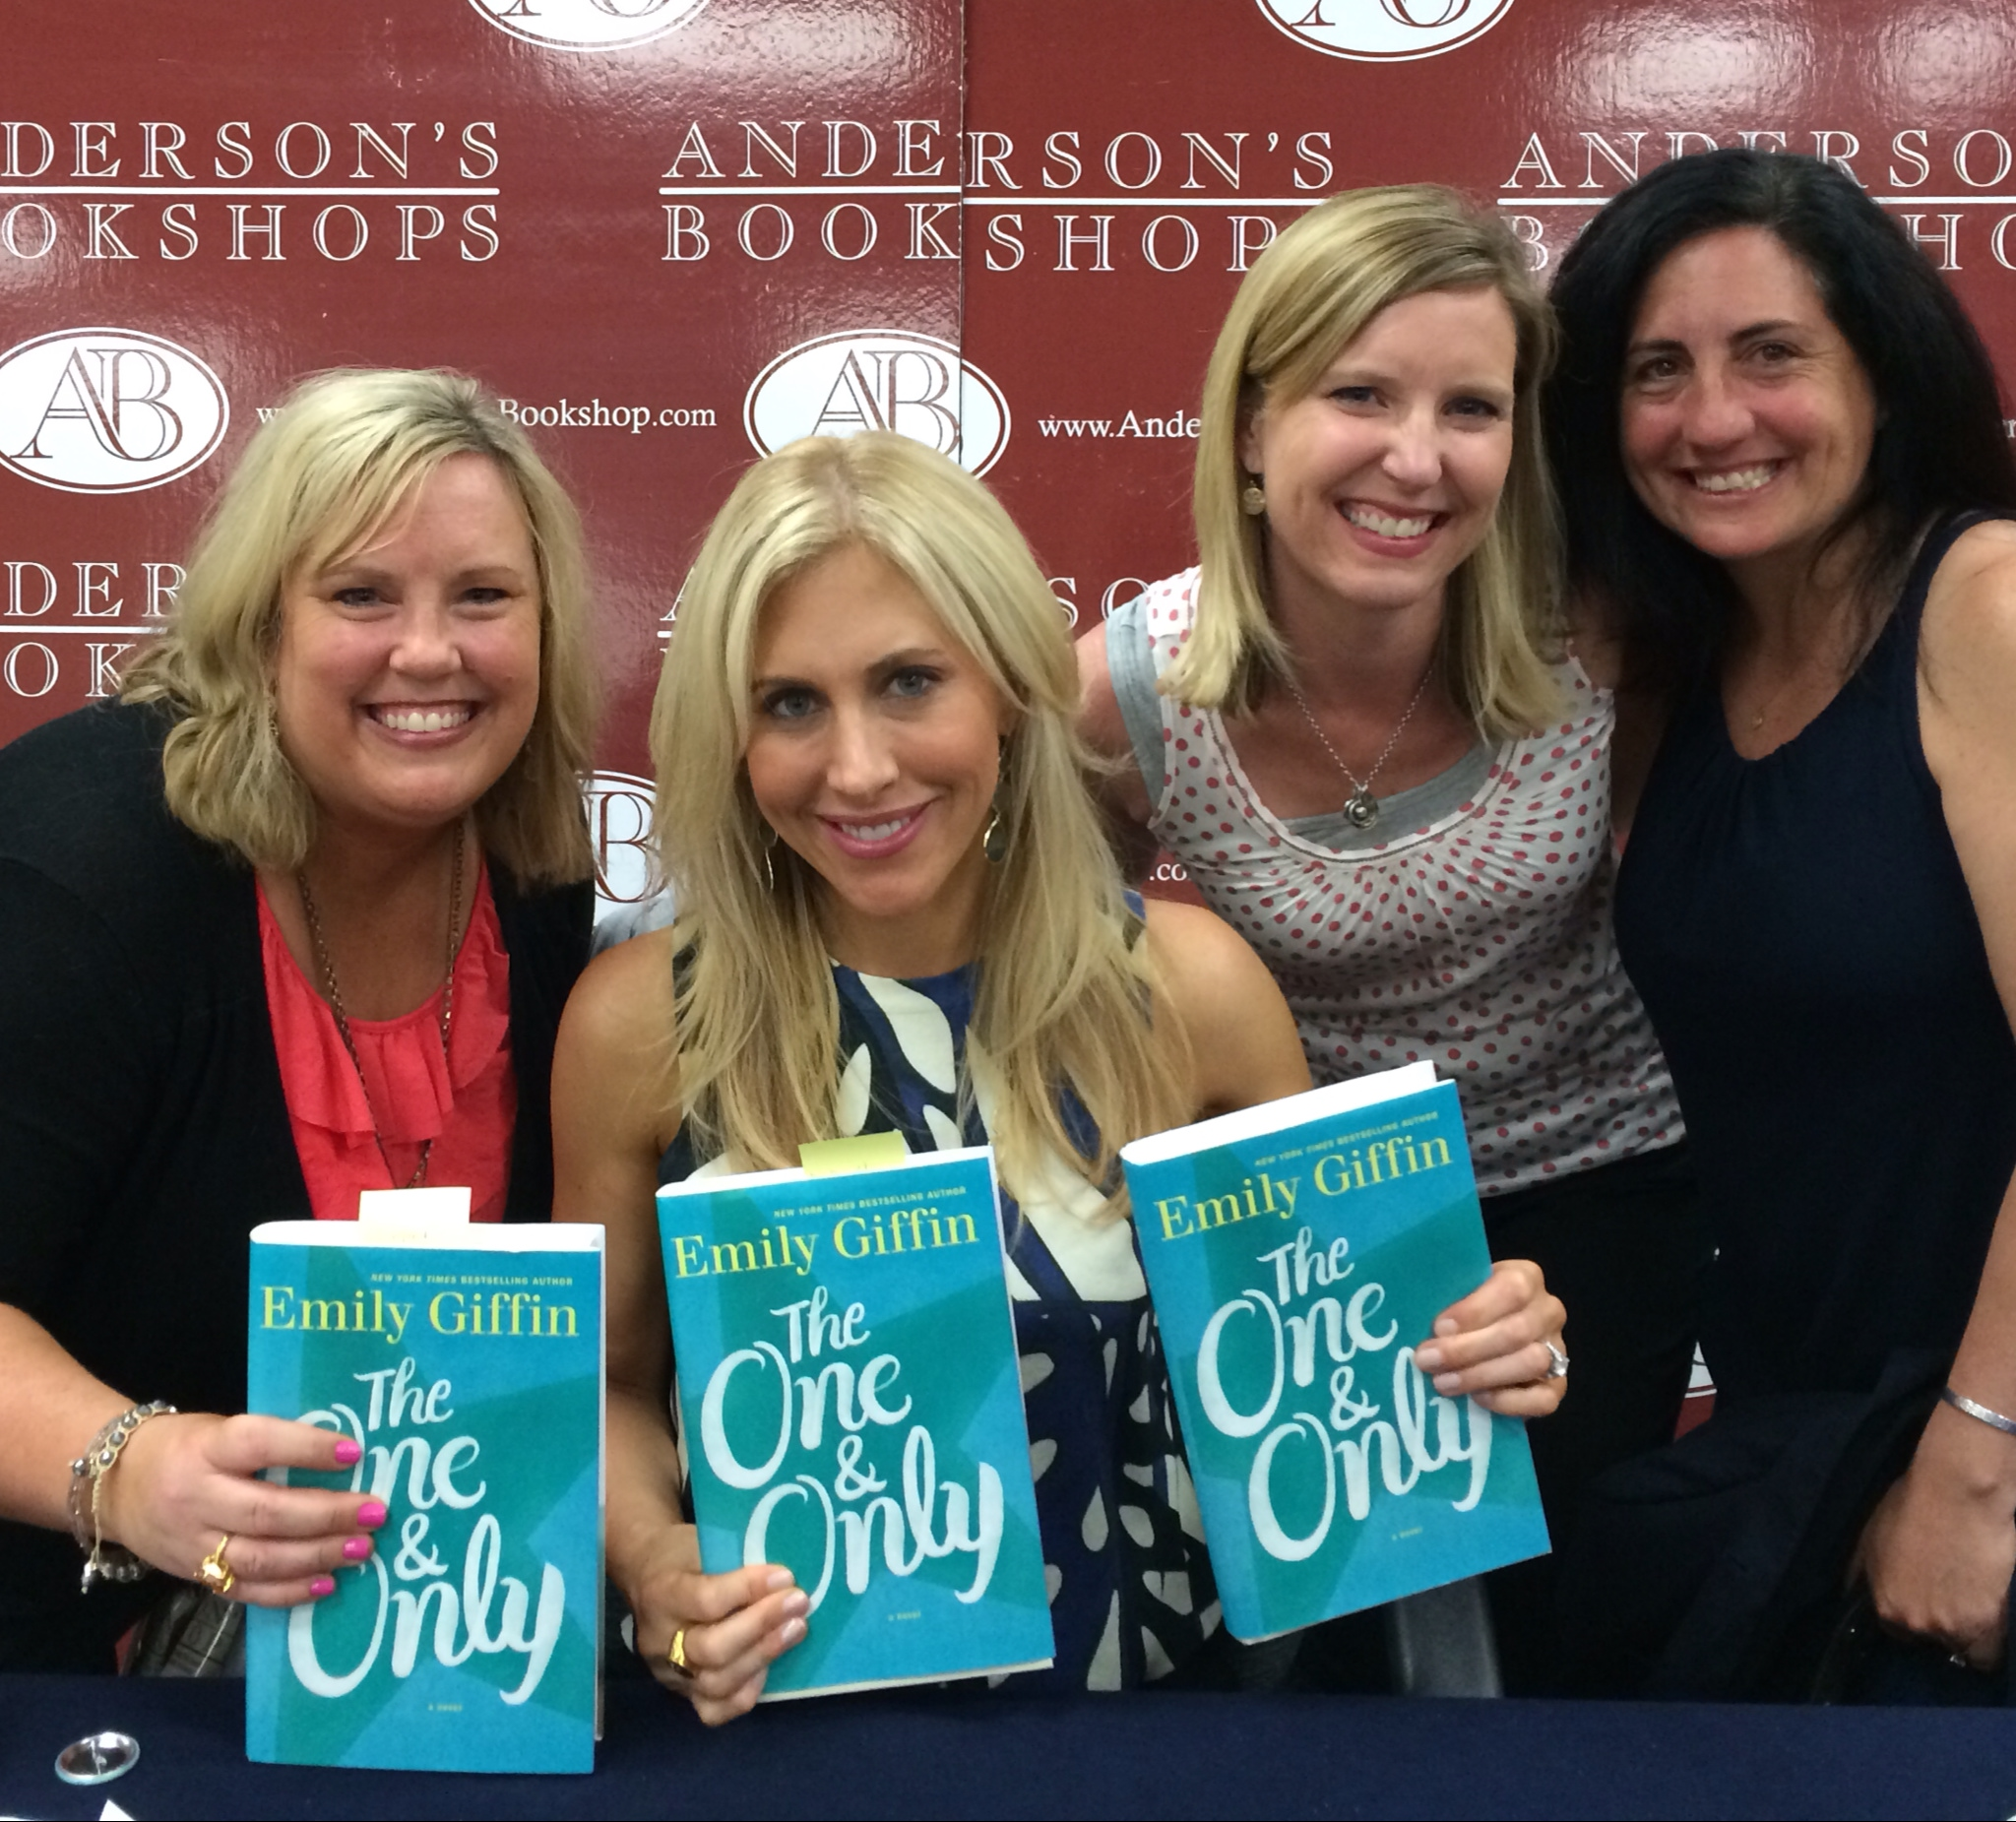 d.d. marx Emily Giffin and friends